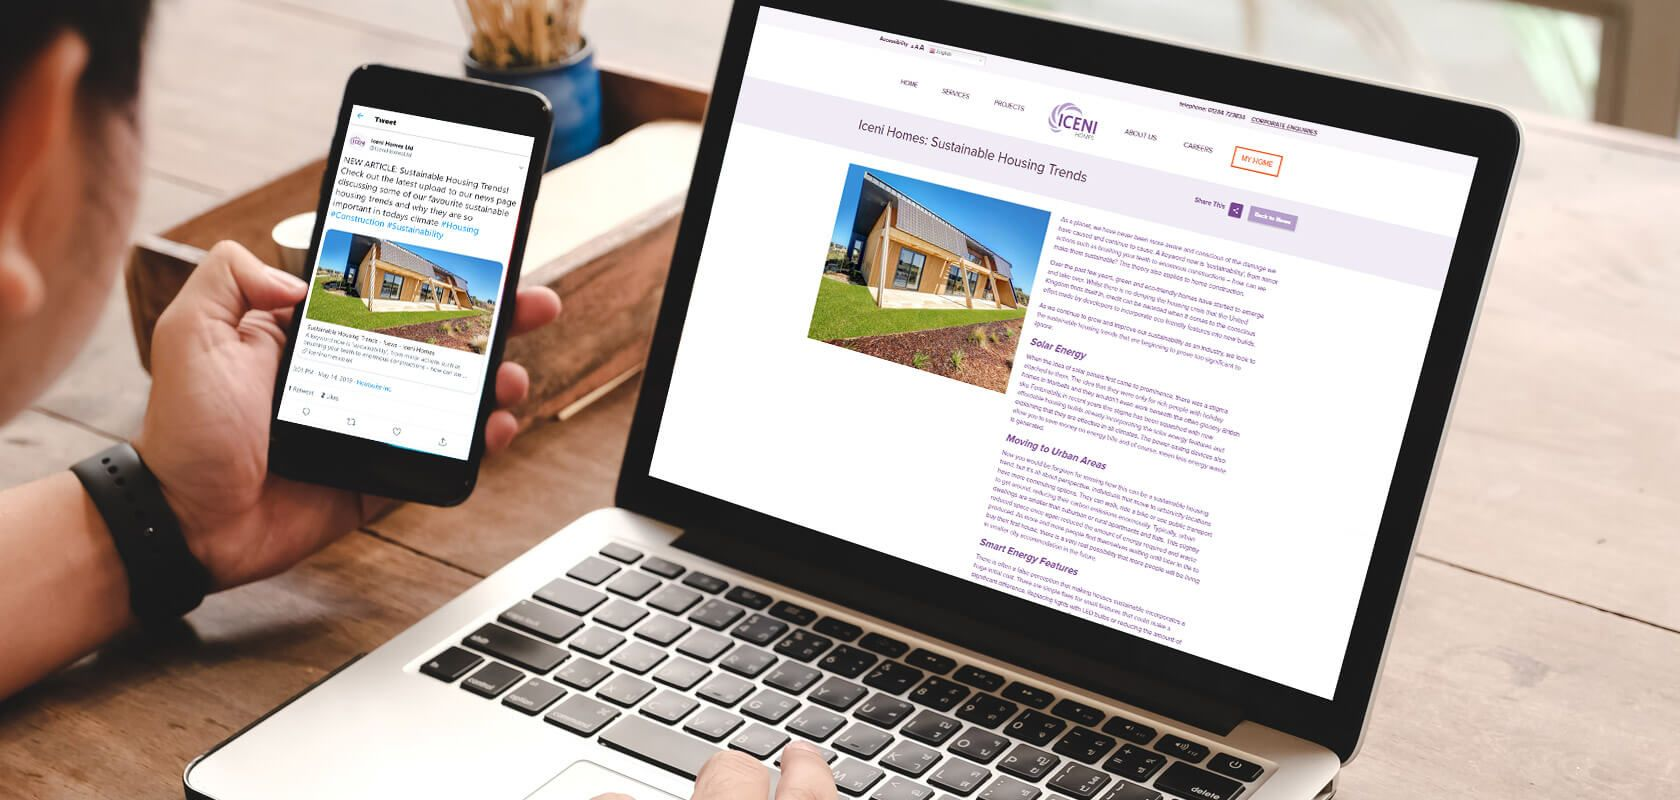 Iceni homes displayed responsively across devices